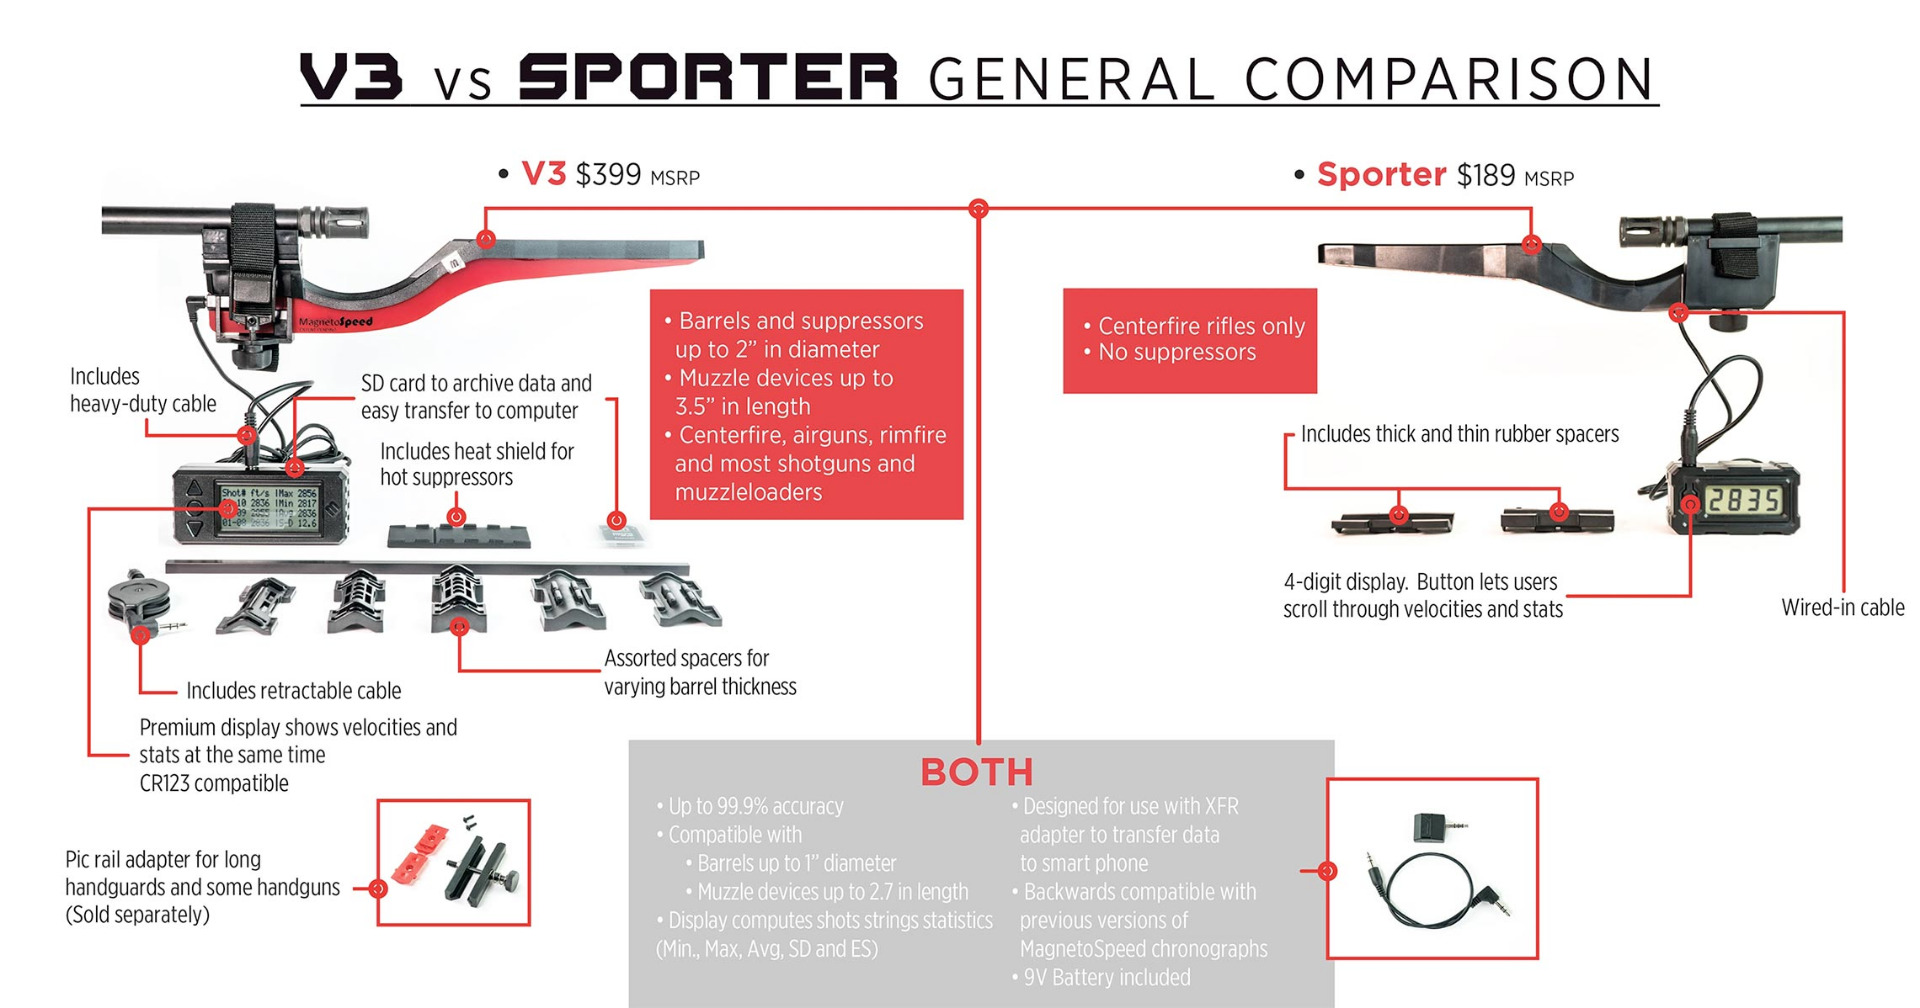 Differences between the MagnetoSpeed V3 Chronograph and MagnetoSpeed Sporter Chronograph